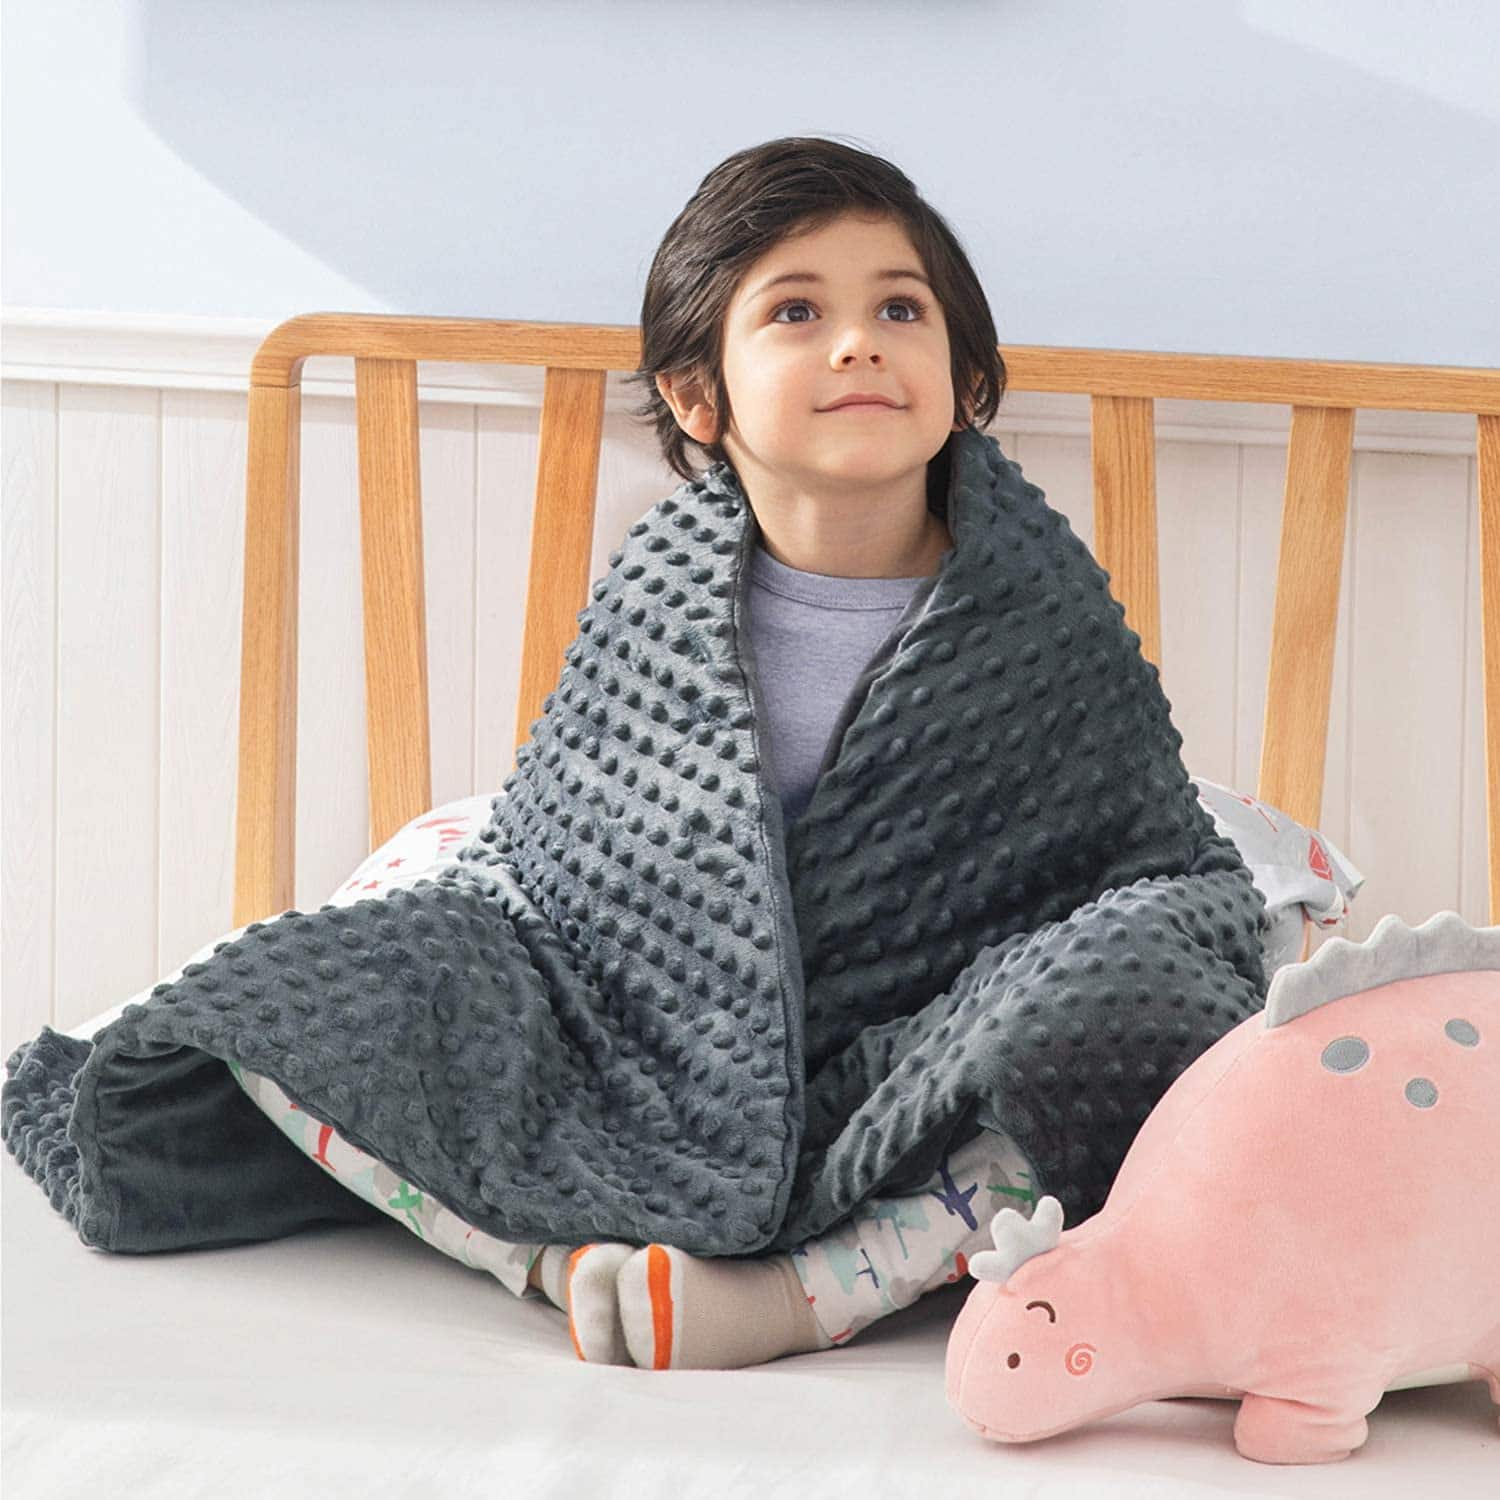 Bedsure Cozy Home via Amazon: Weighted Blanket for Kids with Removable Duvet Cover from $20.99 + Free Shipping